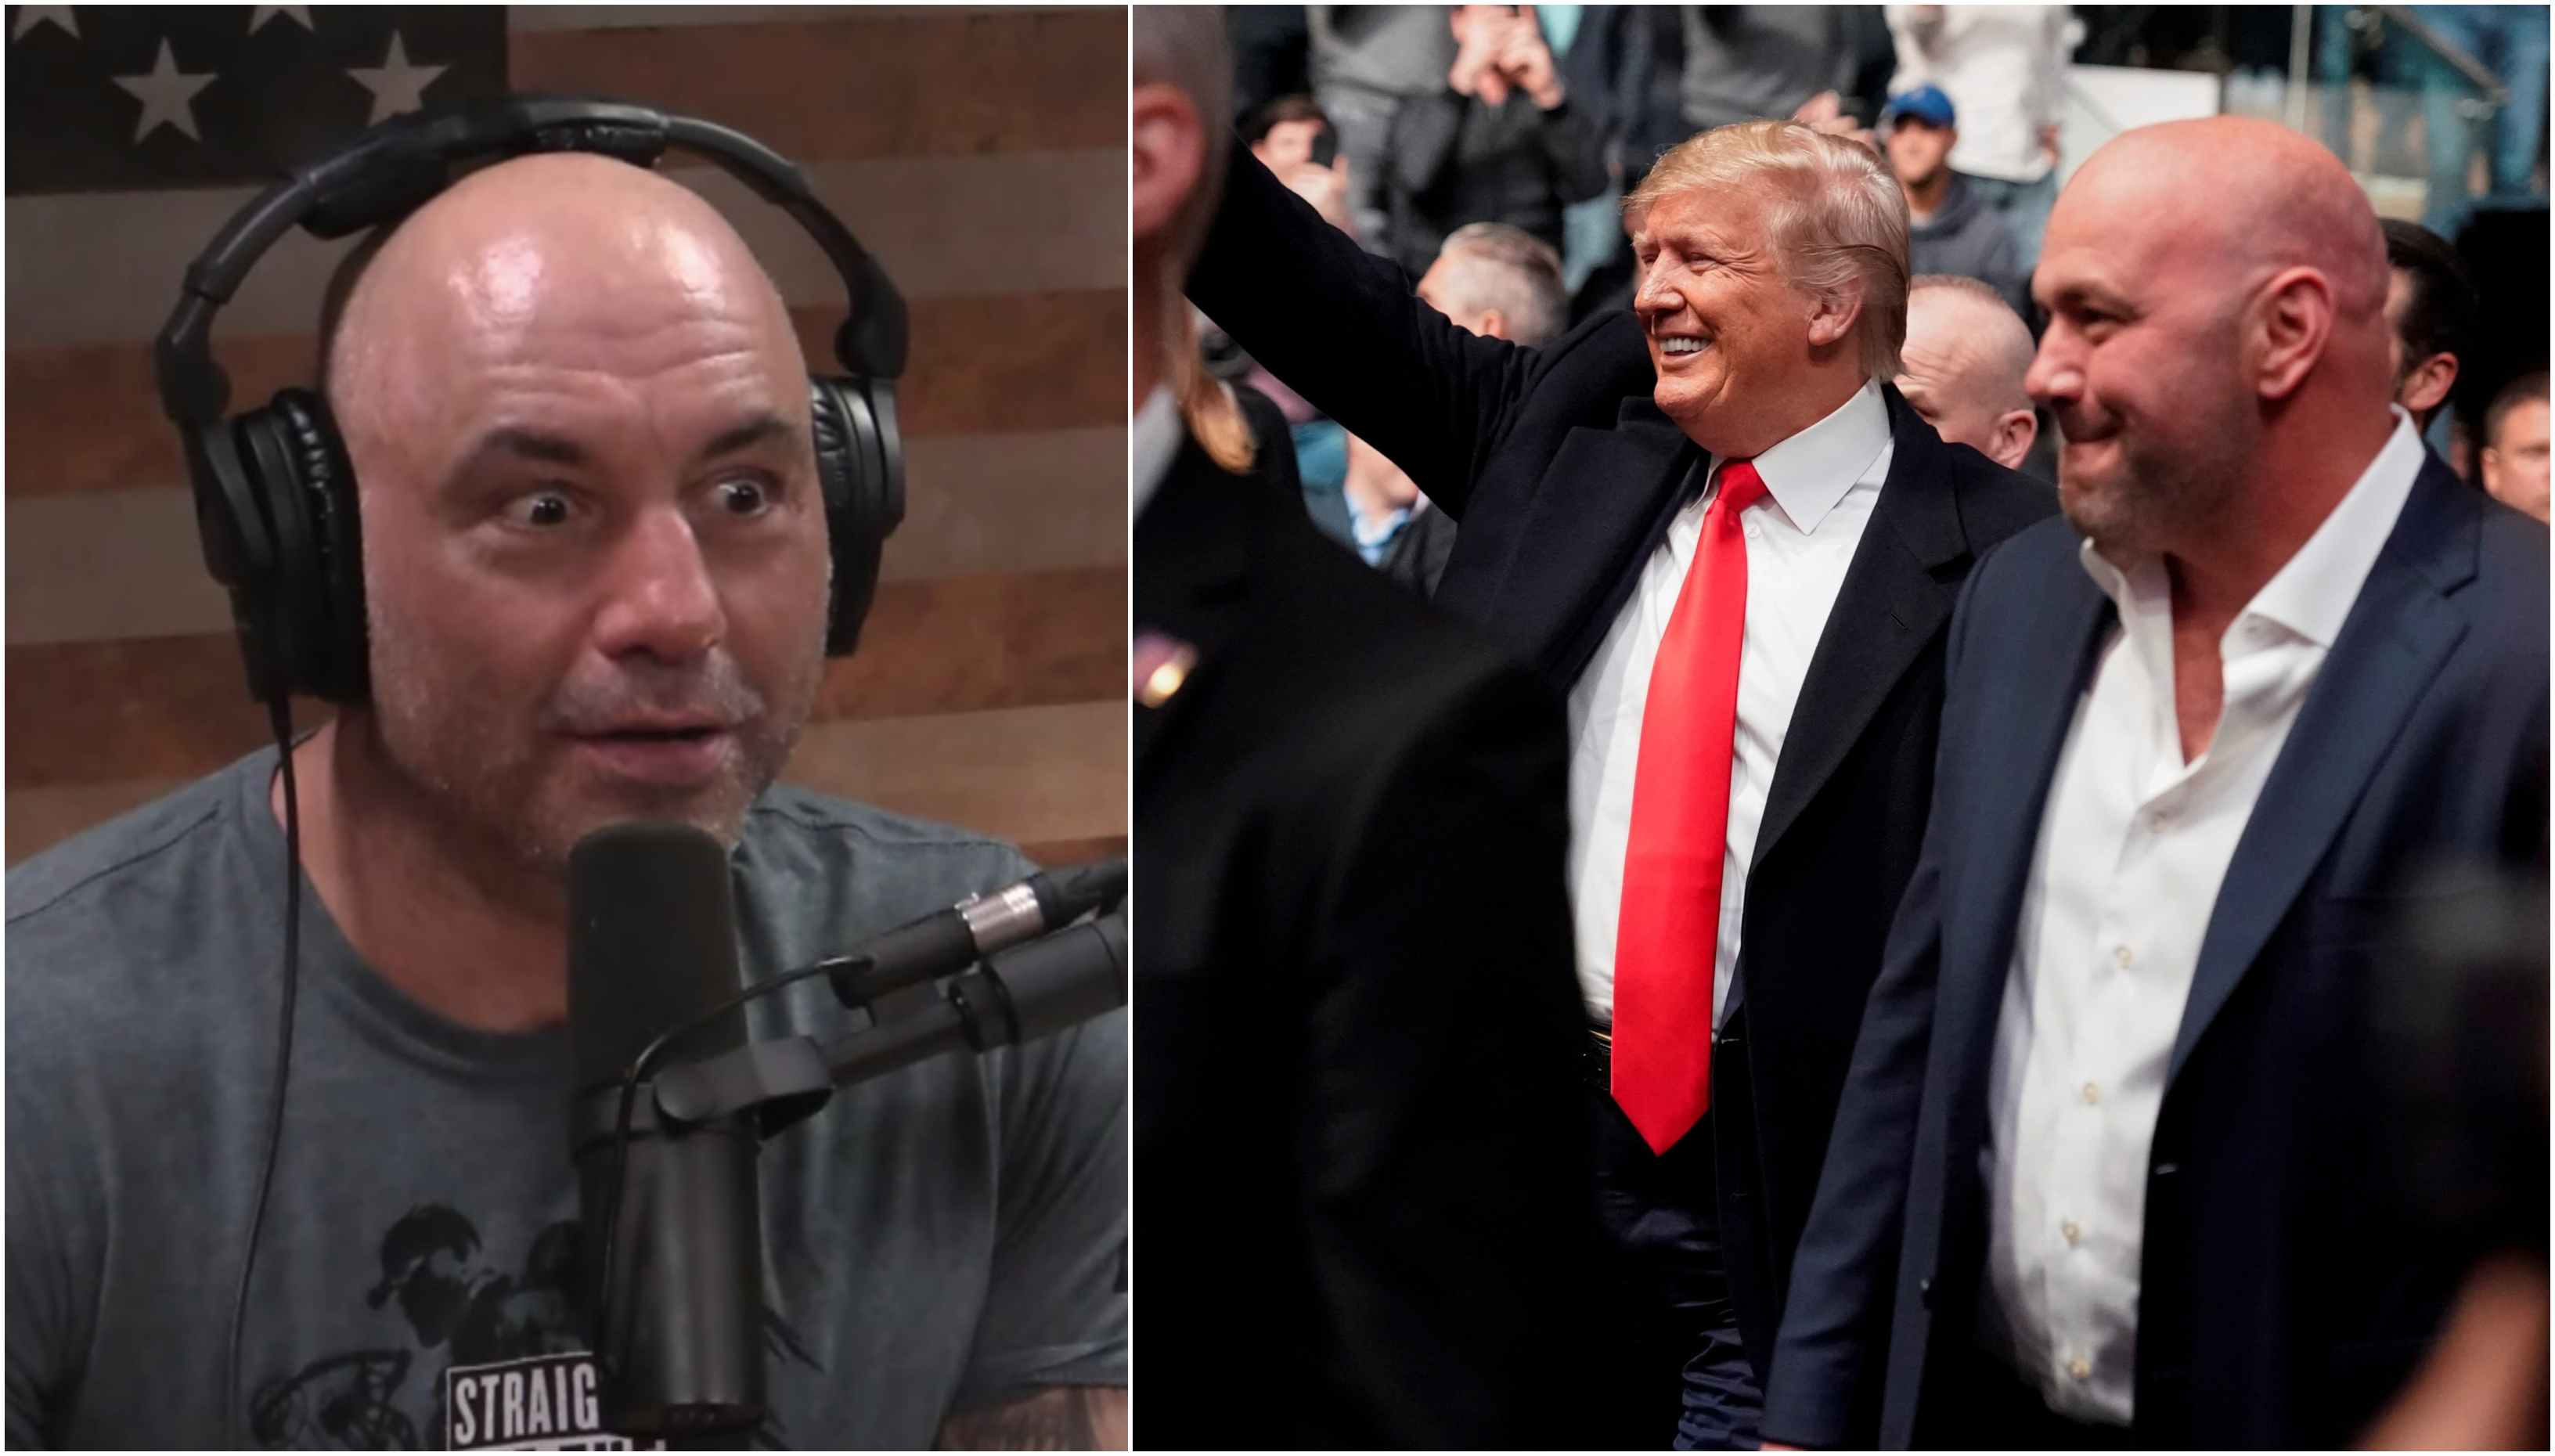 Joe Rogan says Fans 'booed the f**k out of' Donald Trump at UFC 244 - Rogan